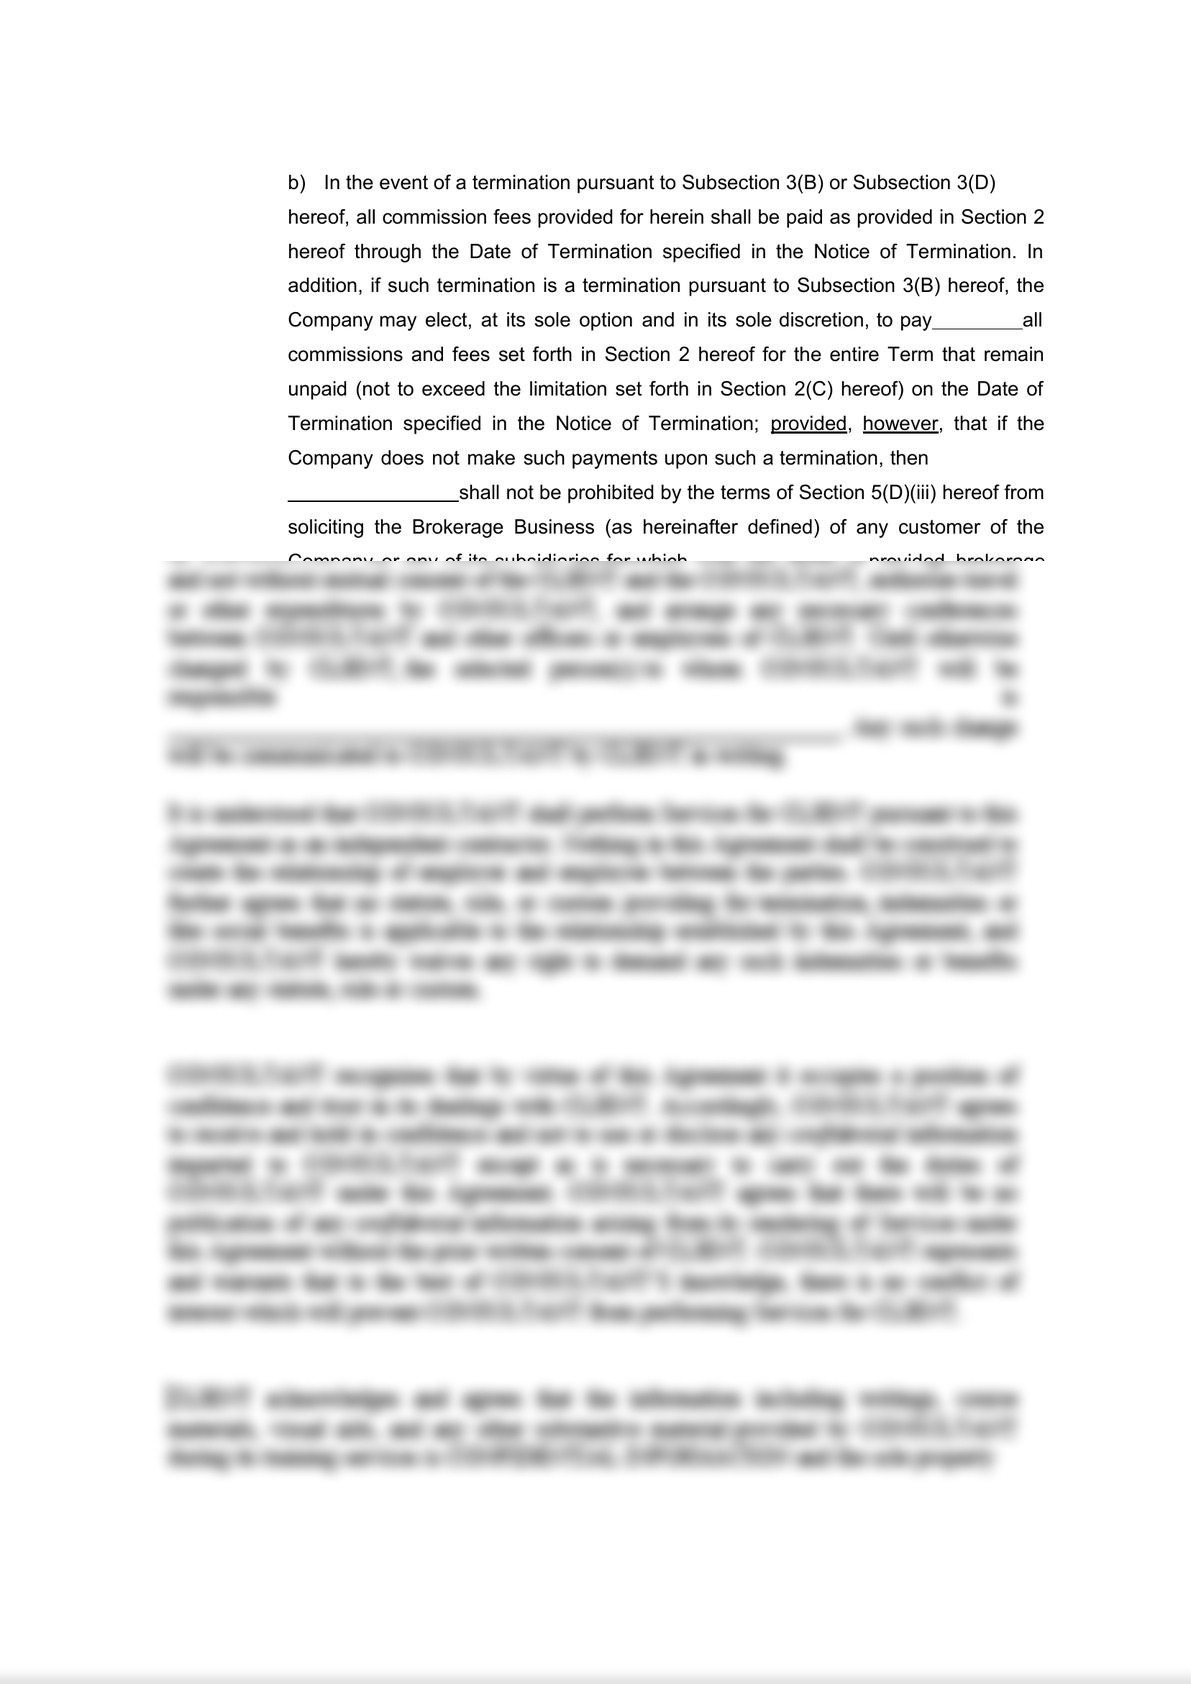 General Commission Agreement-4